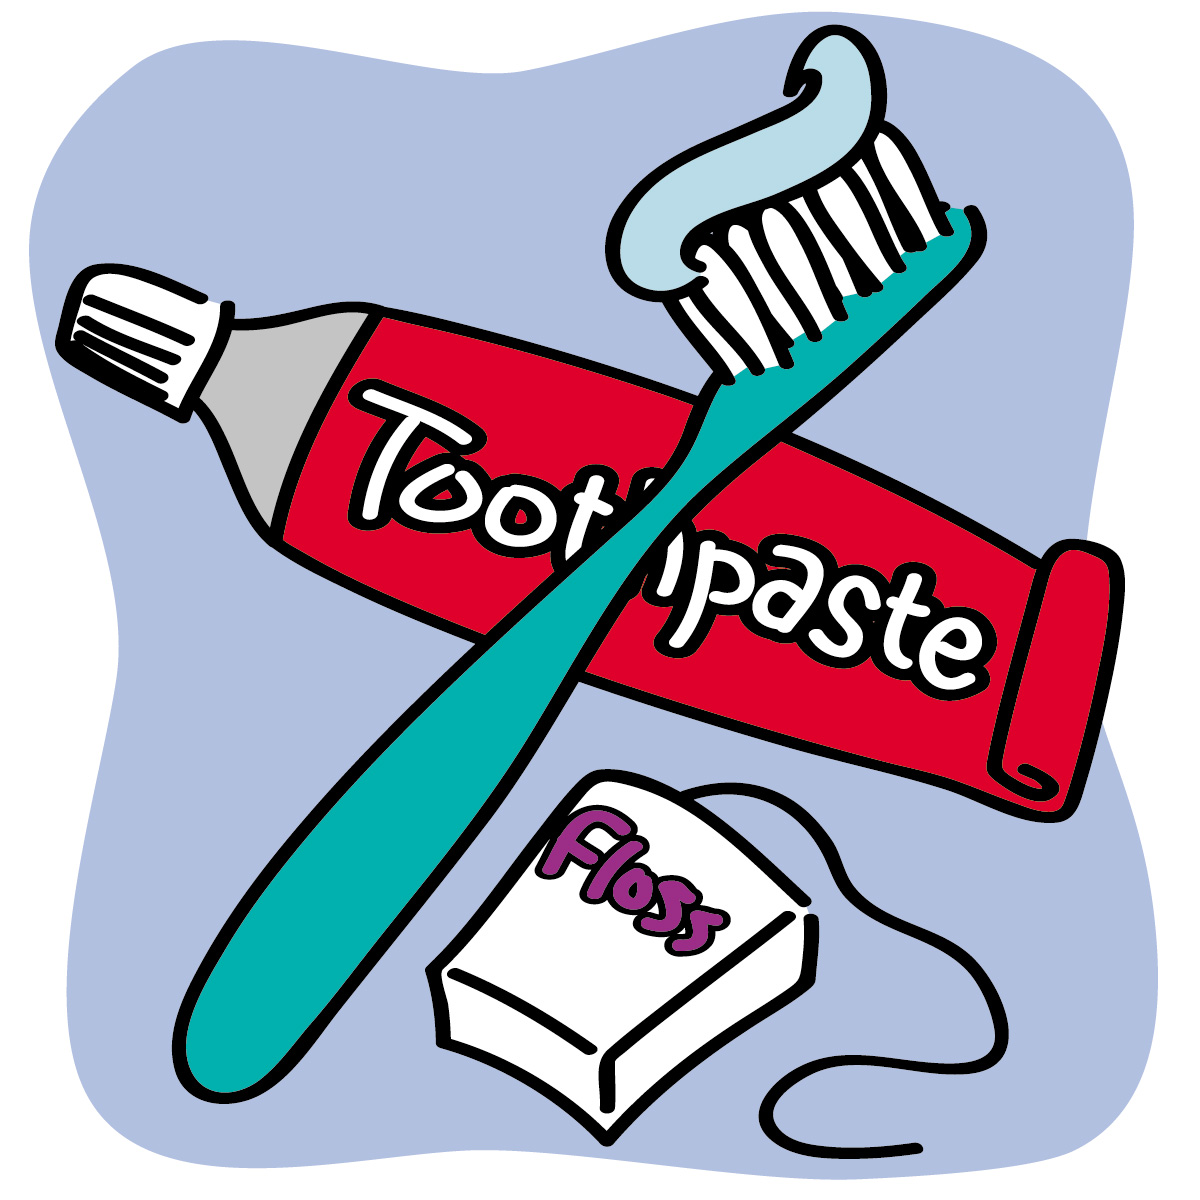 Clipart toothbrush and toothpaste